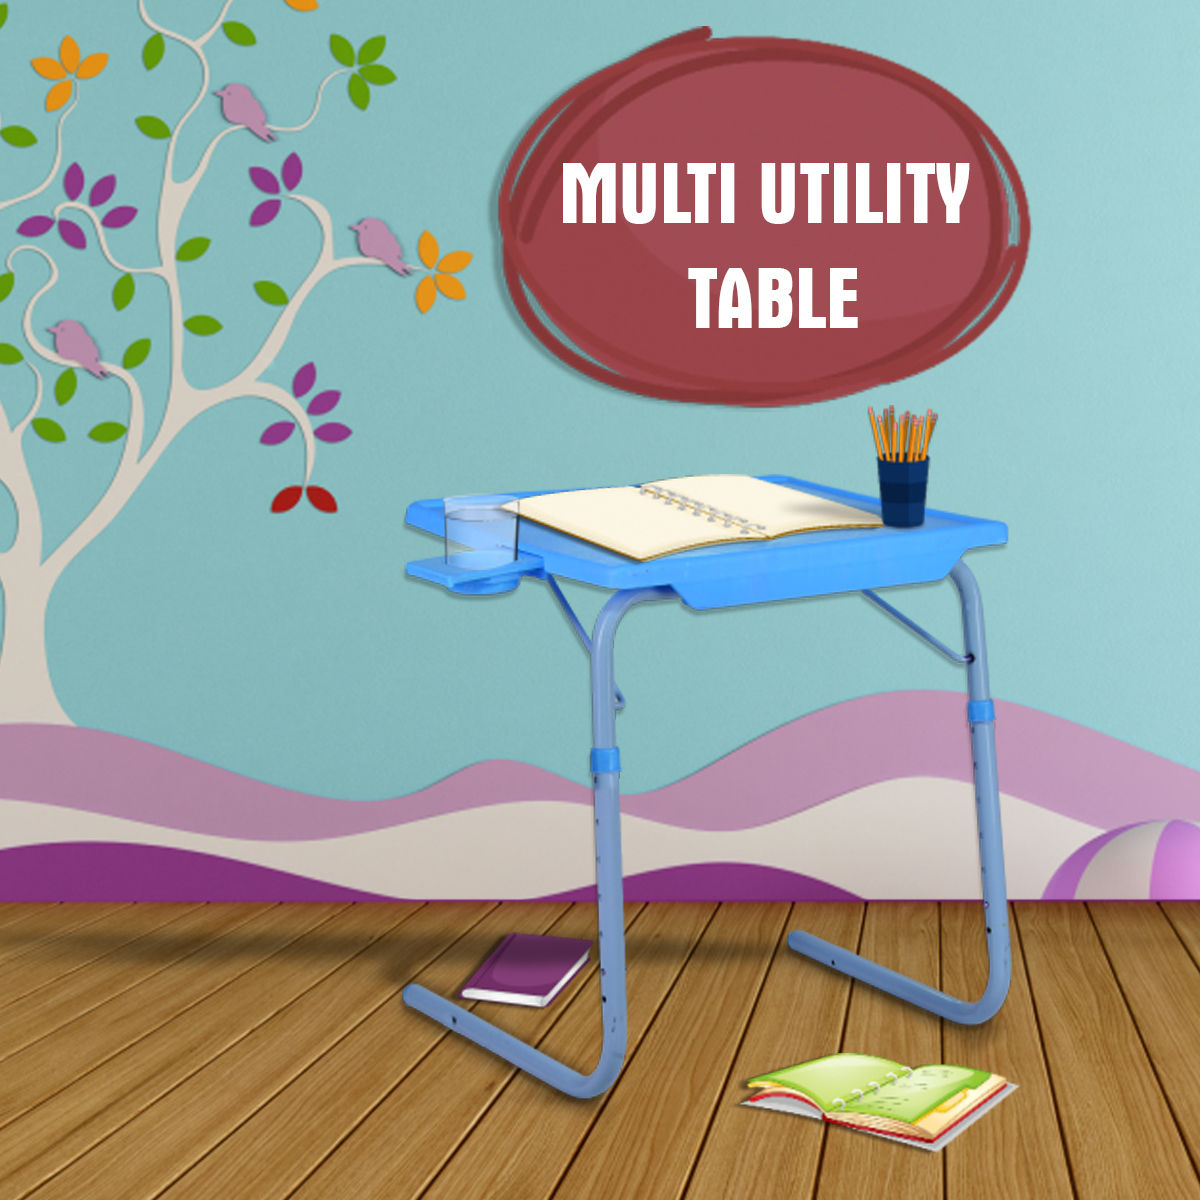 Air Sofa Naaptol: Buy Multi Utility Table Online At Best Price In India On